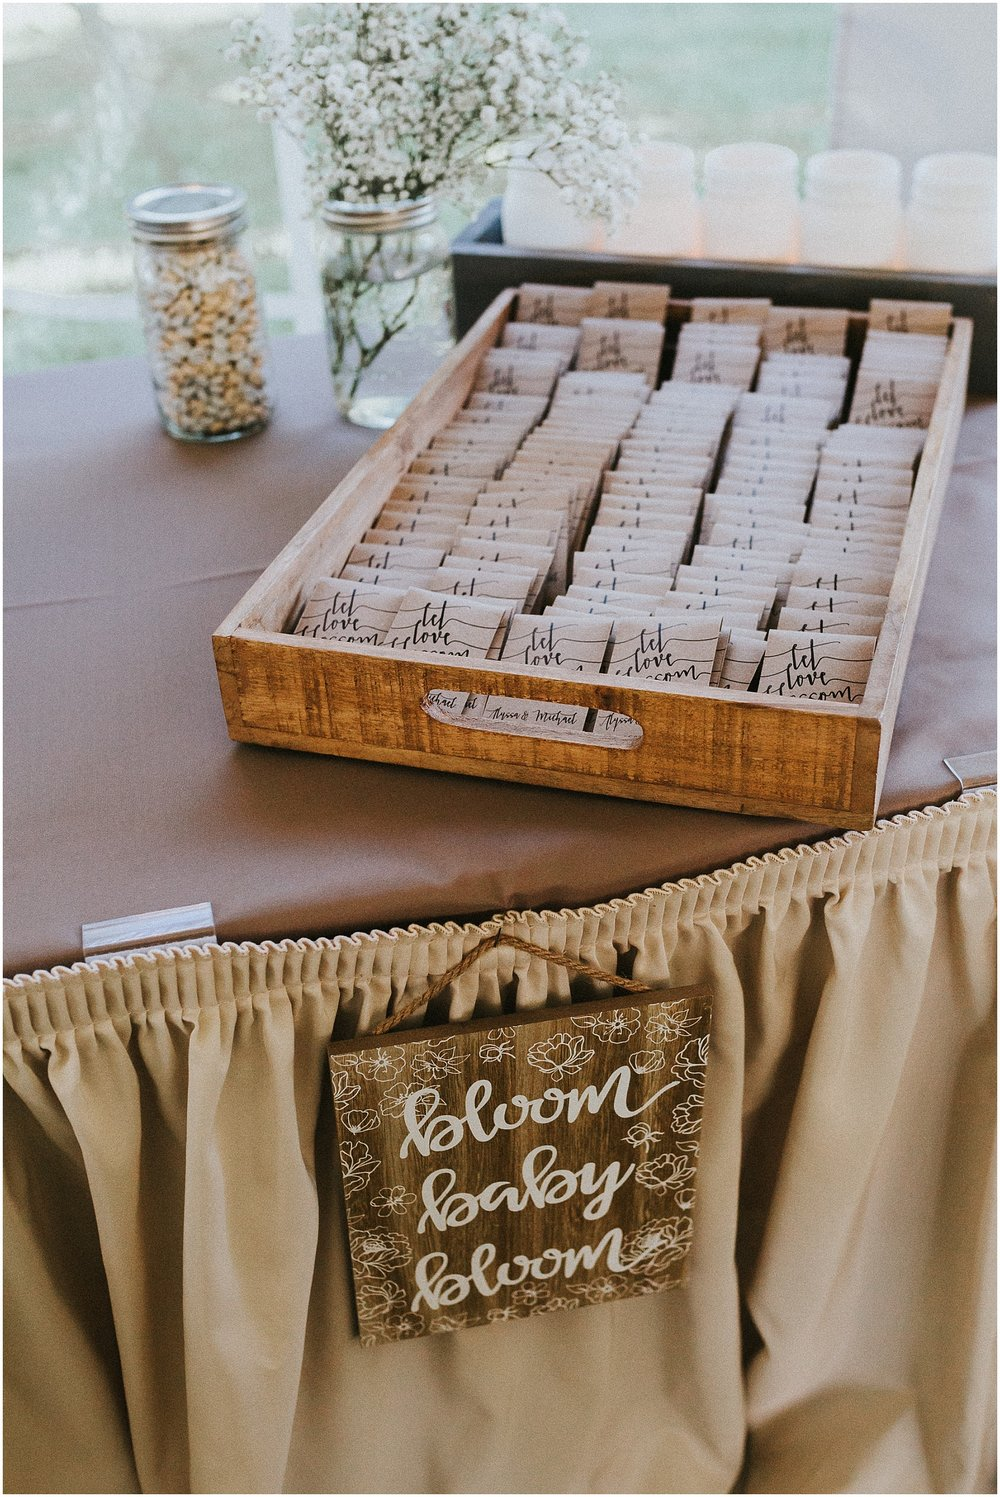 Plant and flower seed packets as wedding reception favors